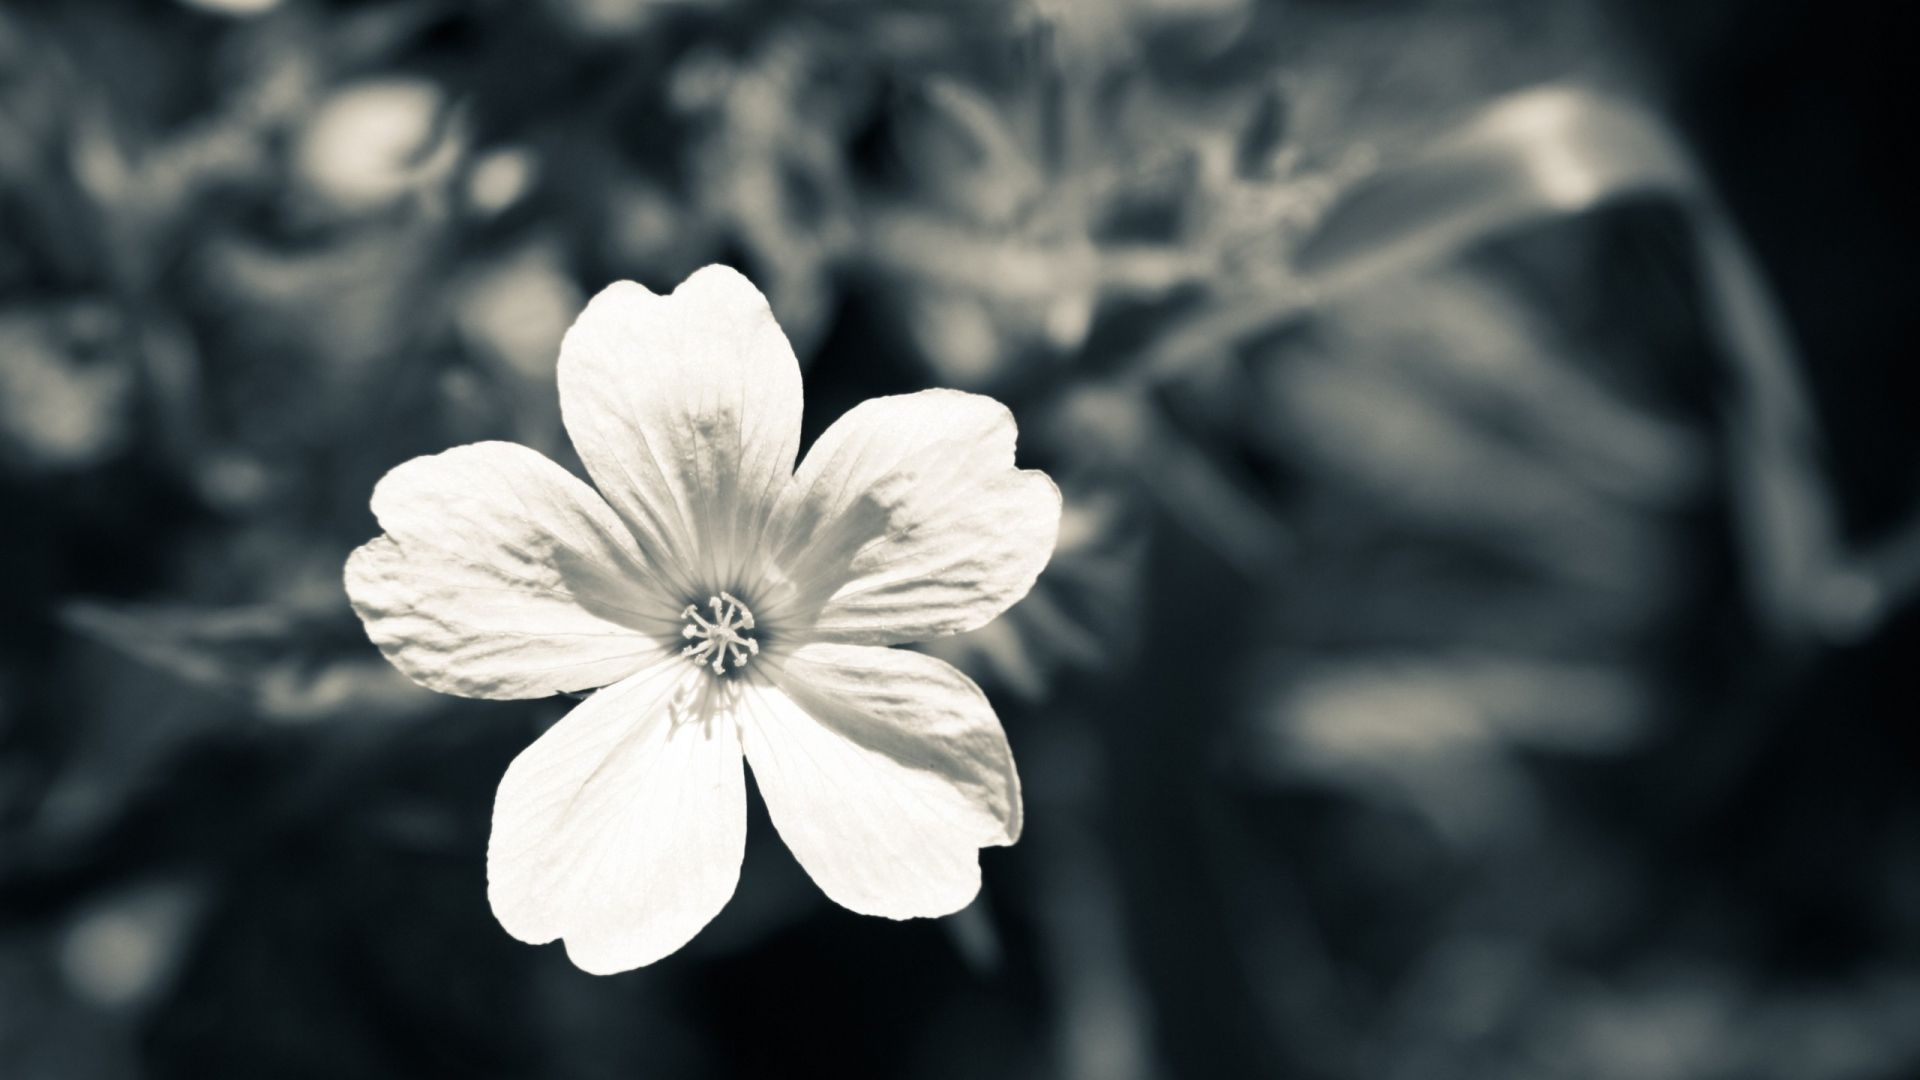 Black and white flower black and white pinterest flower photography black and white flower mightylinksfo Image collections